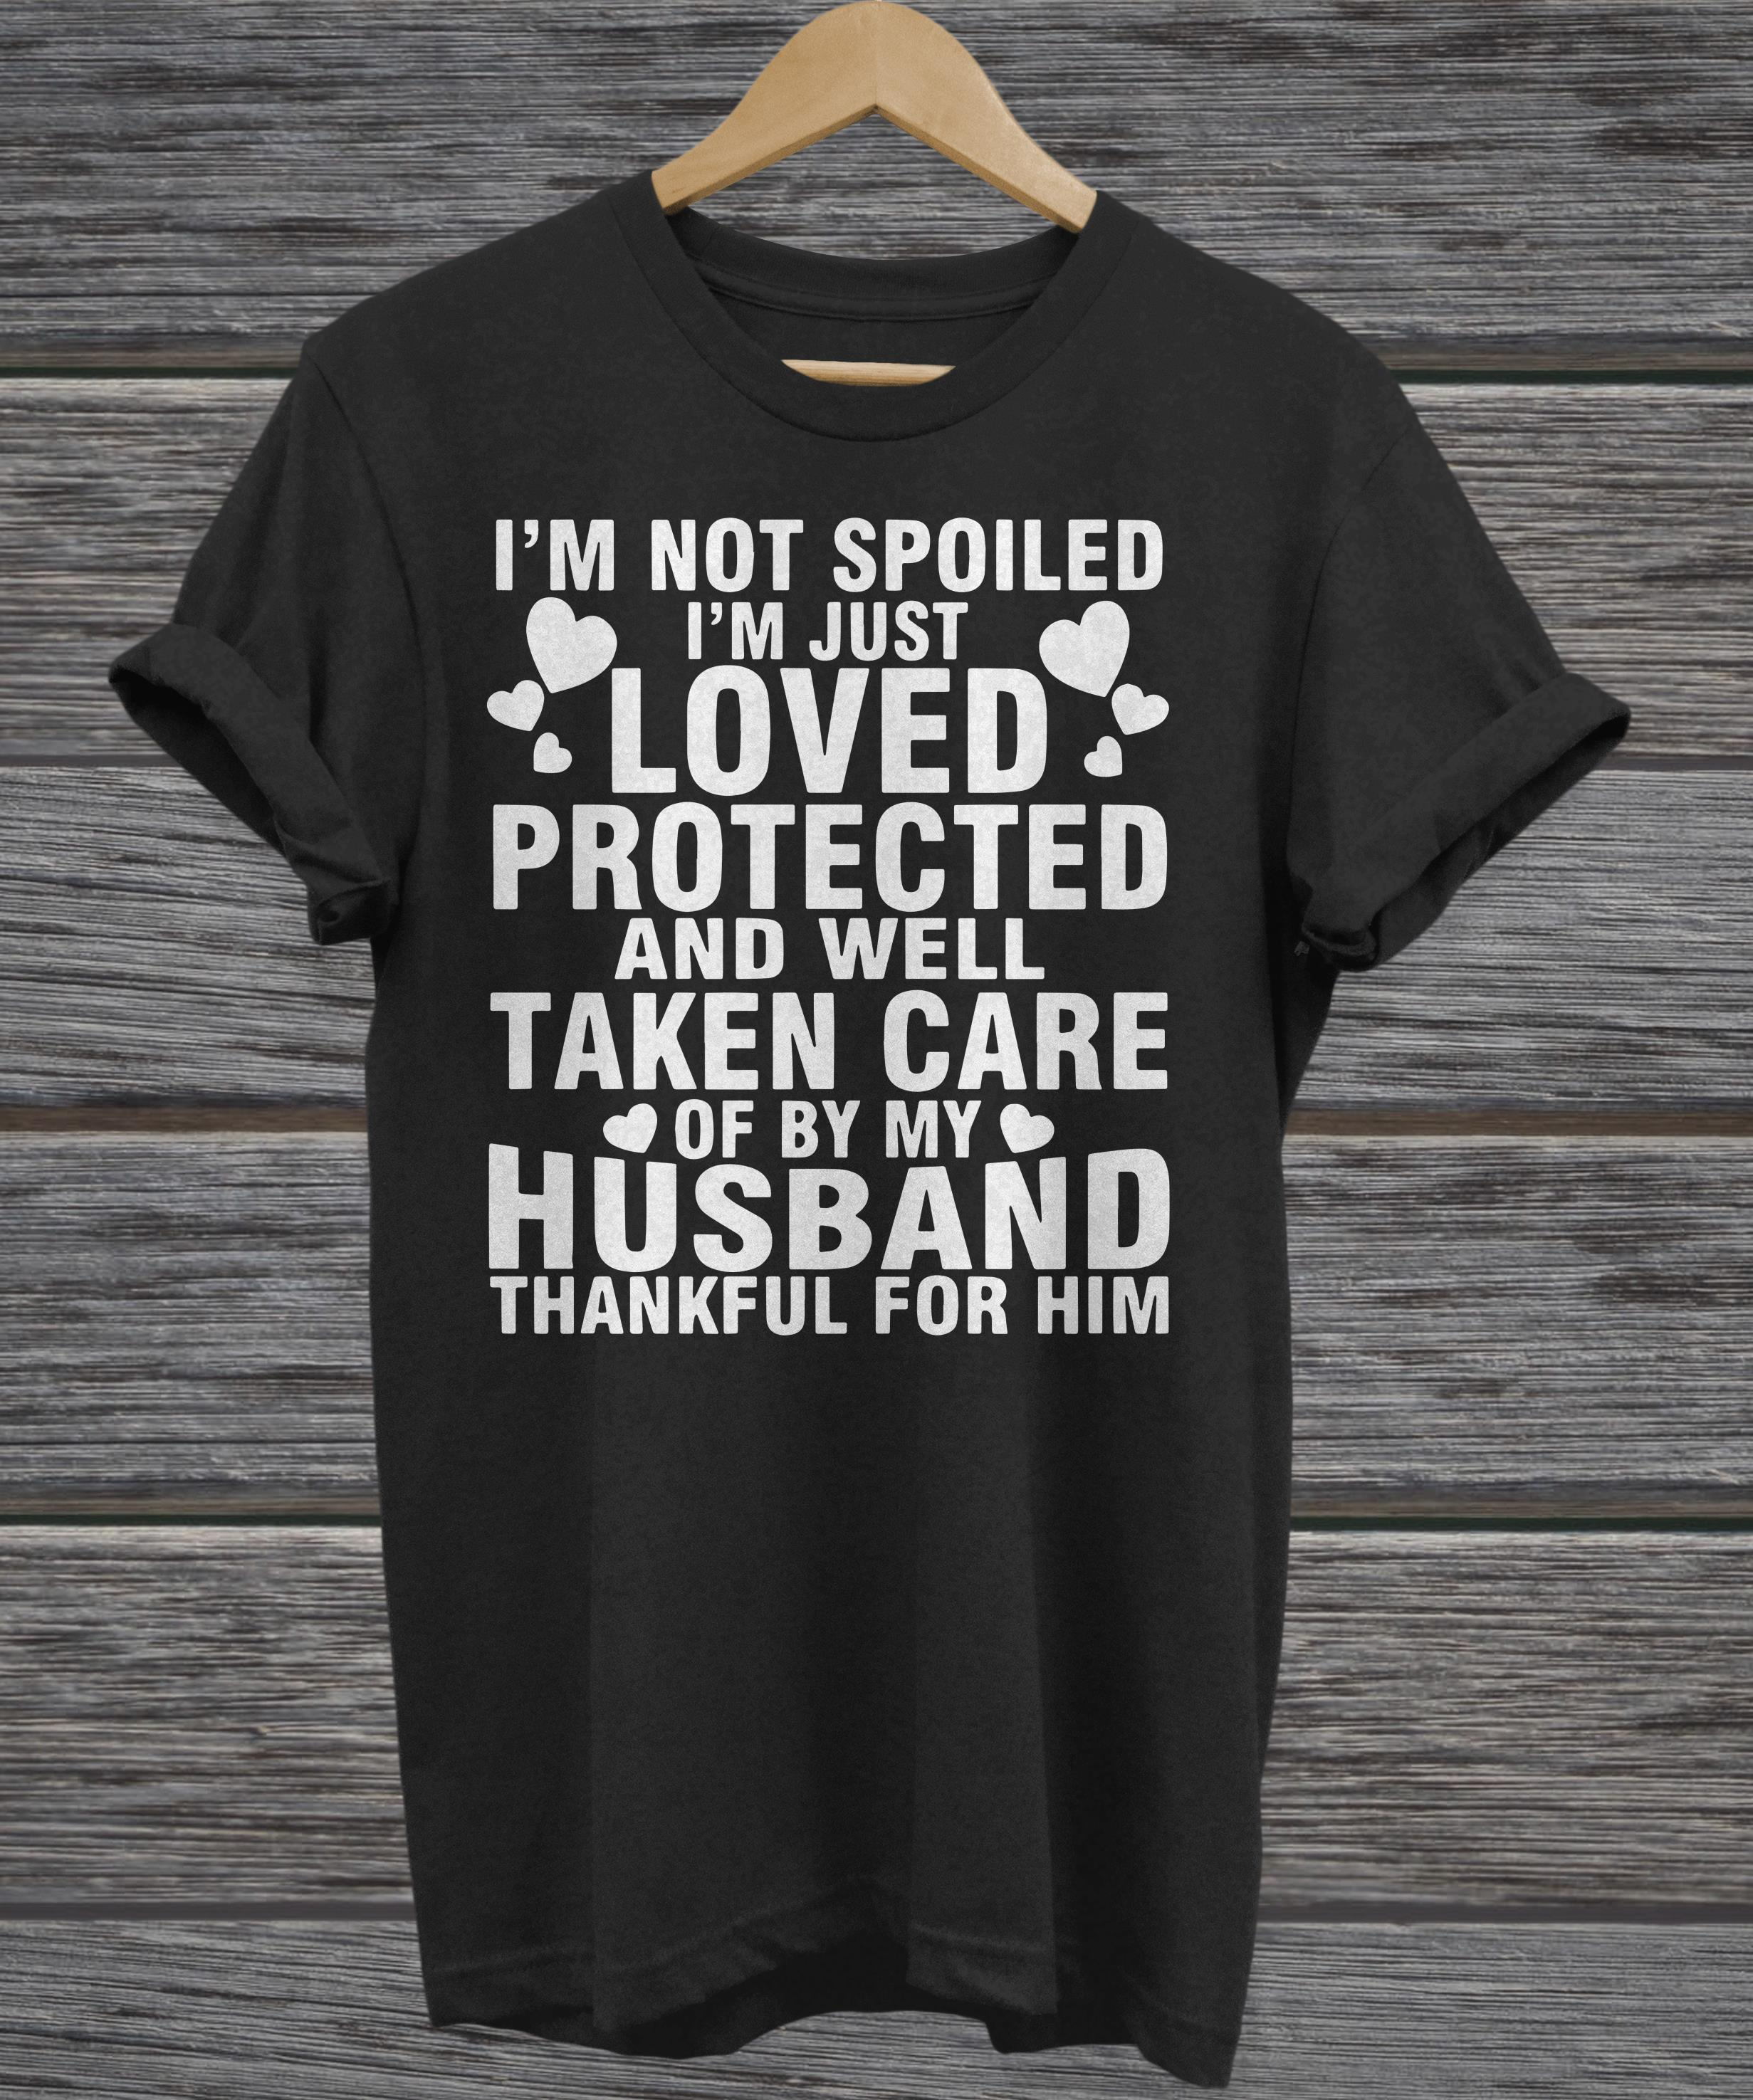 I'm not spoiled I'm just loved protected and well taken care of by my Husband thankful for him ladies tee